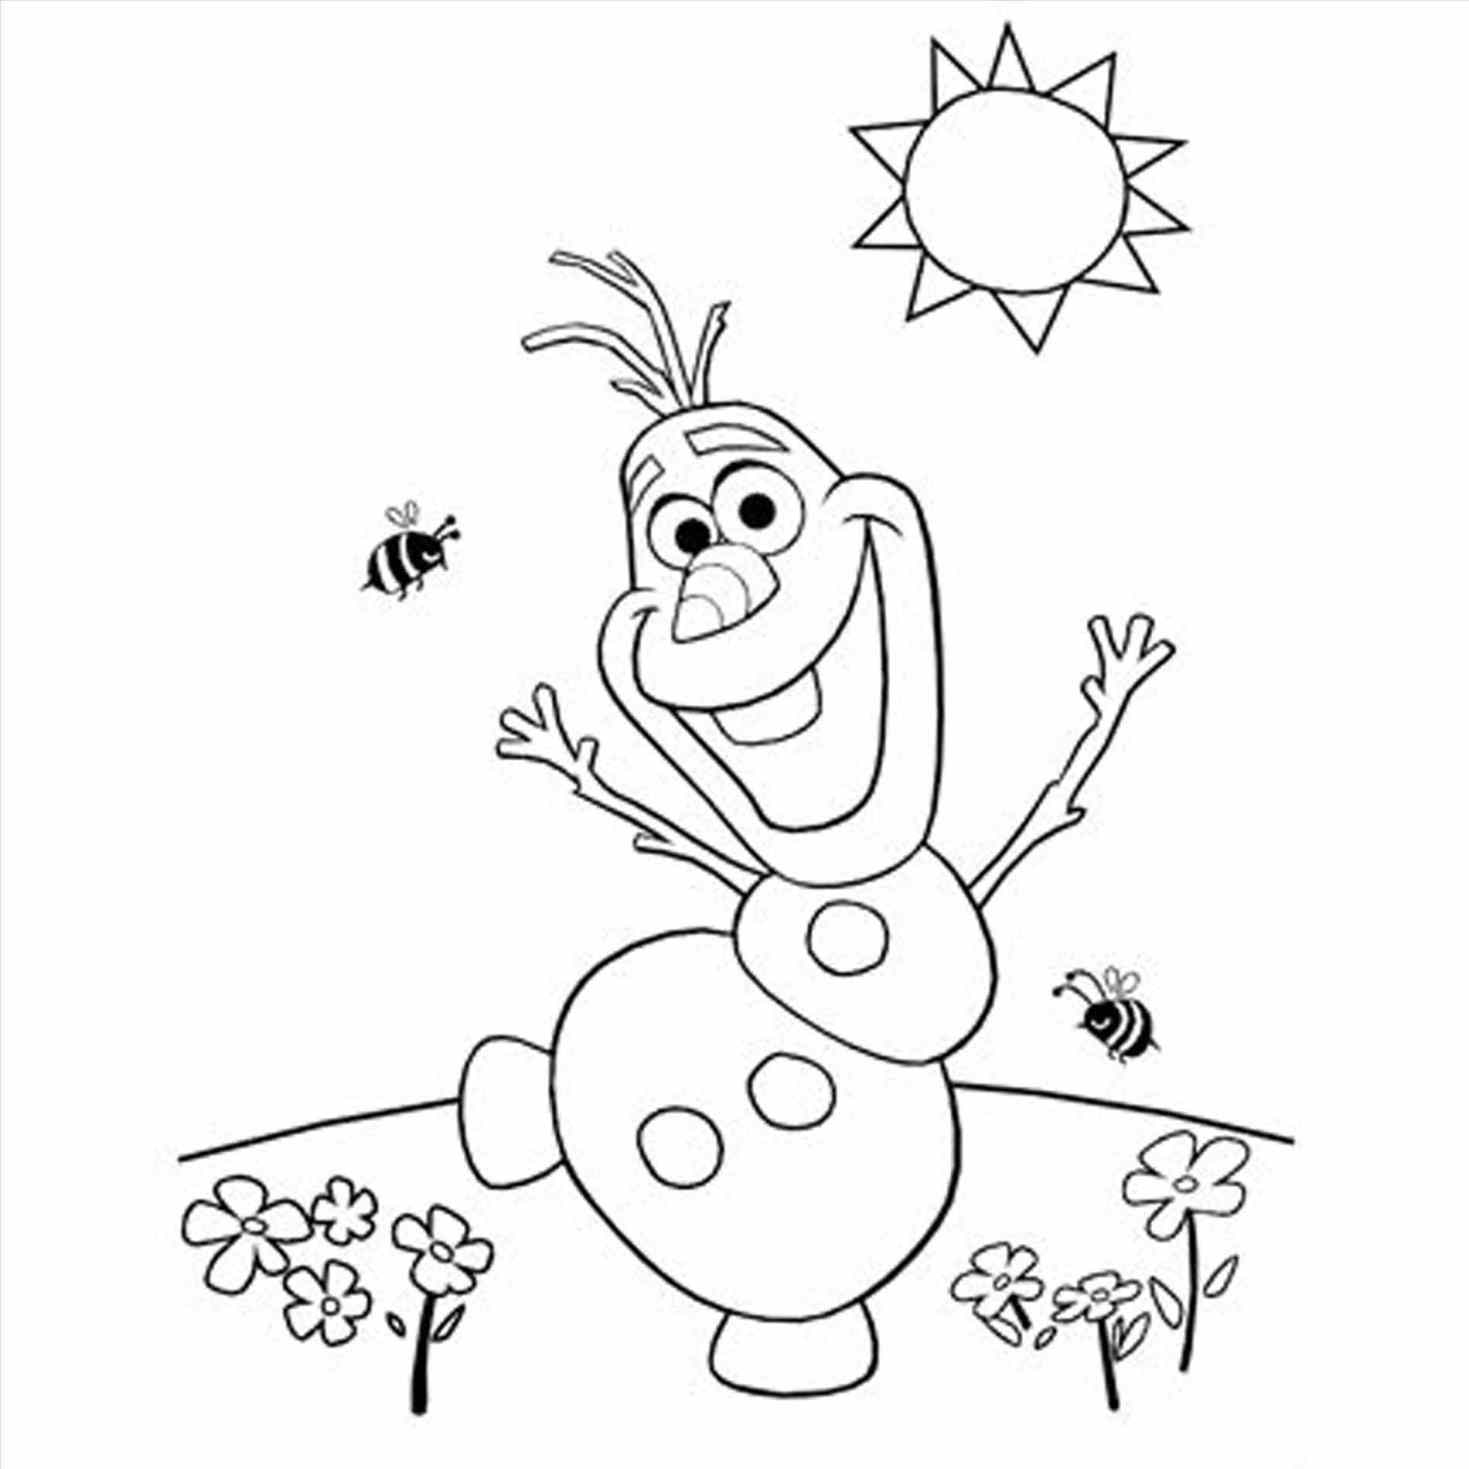 princess coloring pages frozen olaf - photo#16